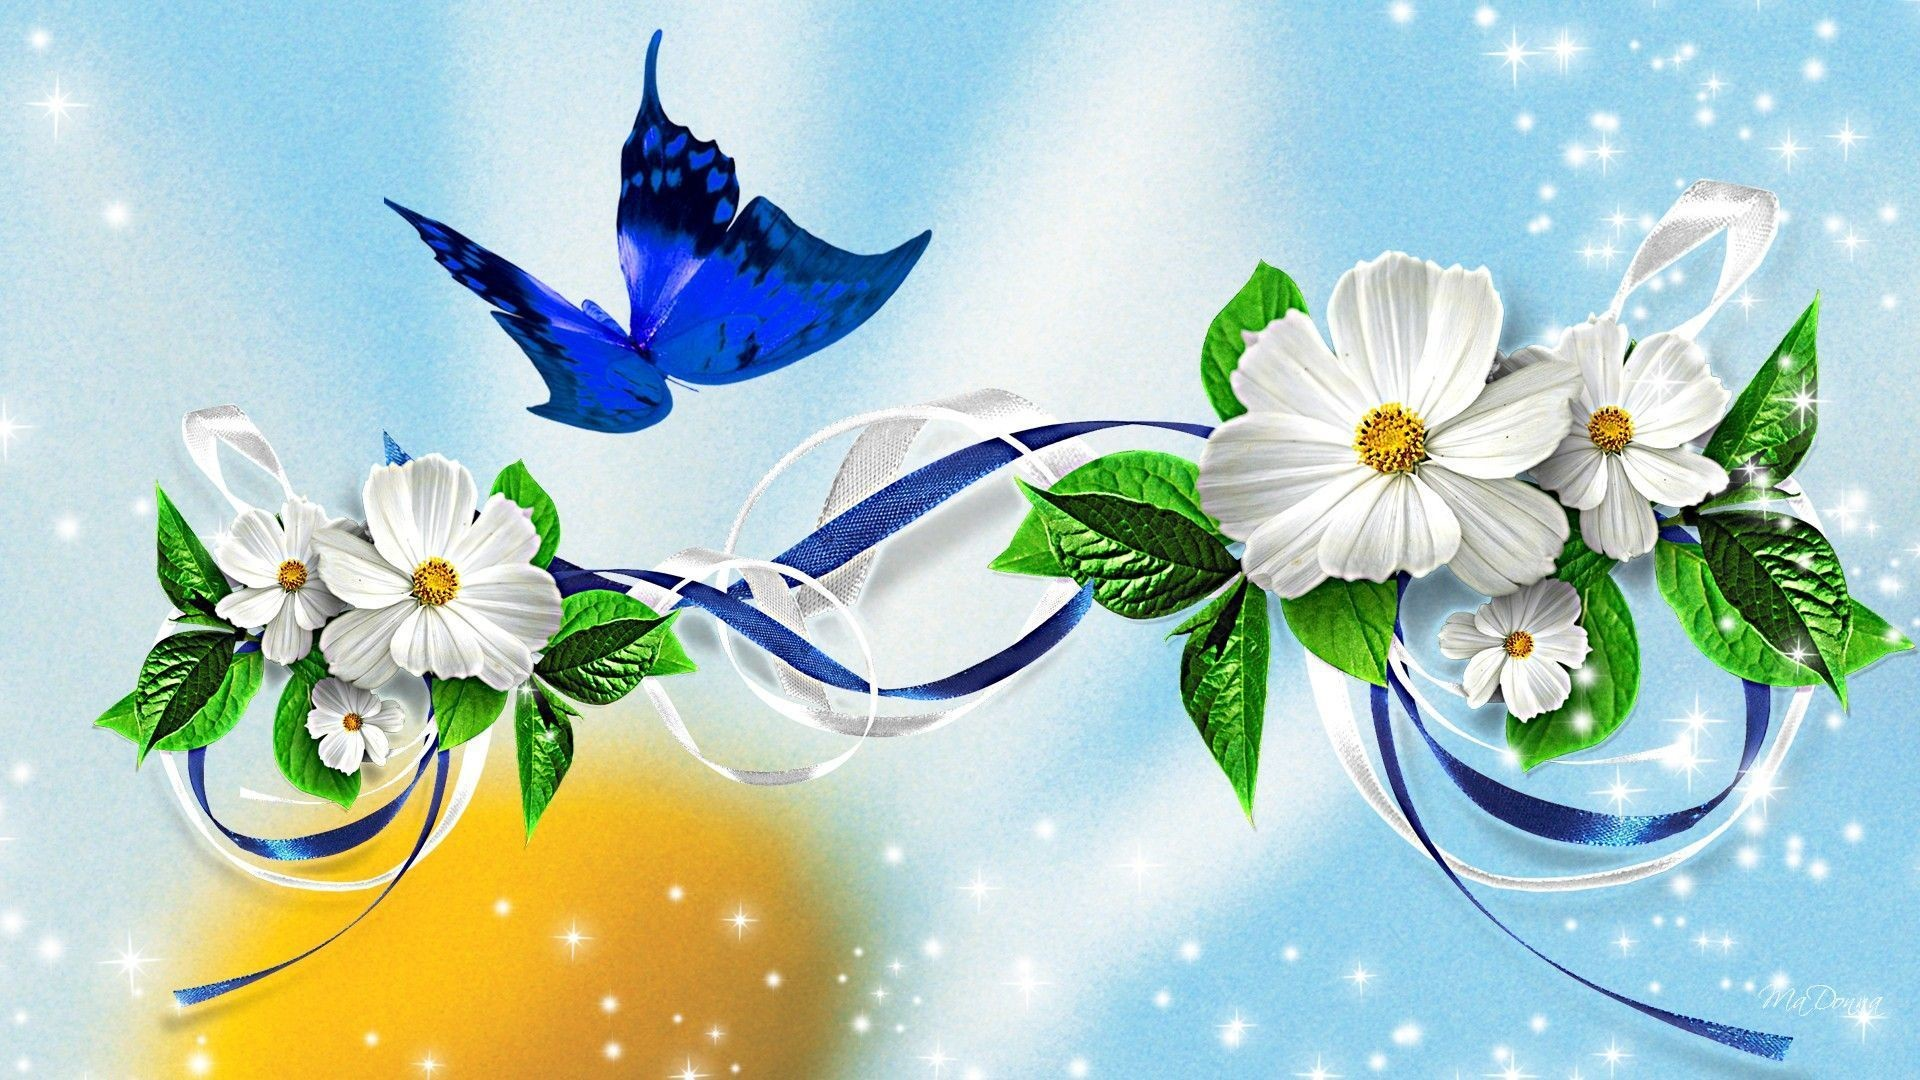 Free butterfly wallpapers download ~ Toptenpack.com